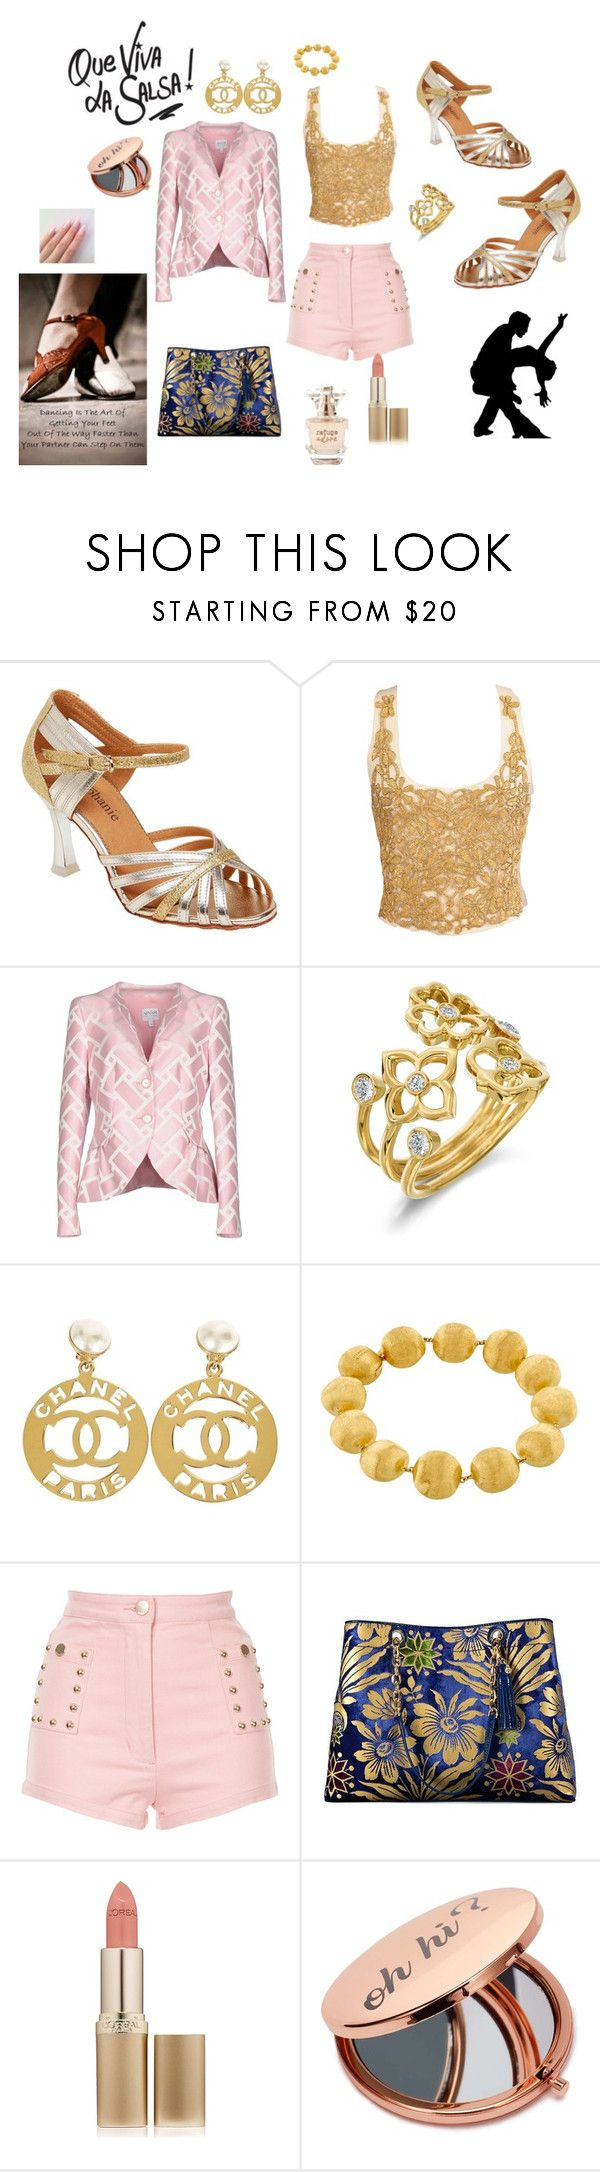 """que vive la salsa"" by vincenza-adamo ❤ liked on Polyvore featuring Salsa, Armani Collezioni, Gumuchian, Chanel, Marco Bicego, Alice McCall, Tory Burch, L'Oréal Paris, Miss Selfridge and Refuge"